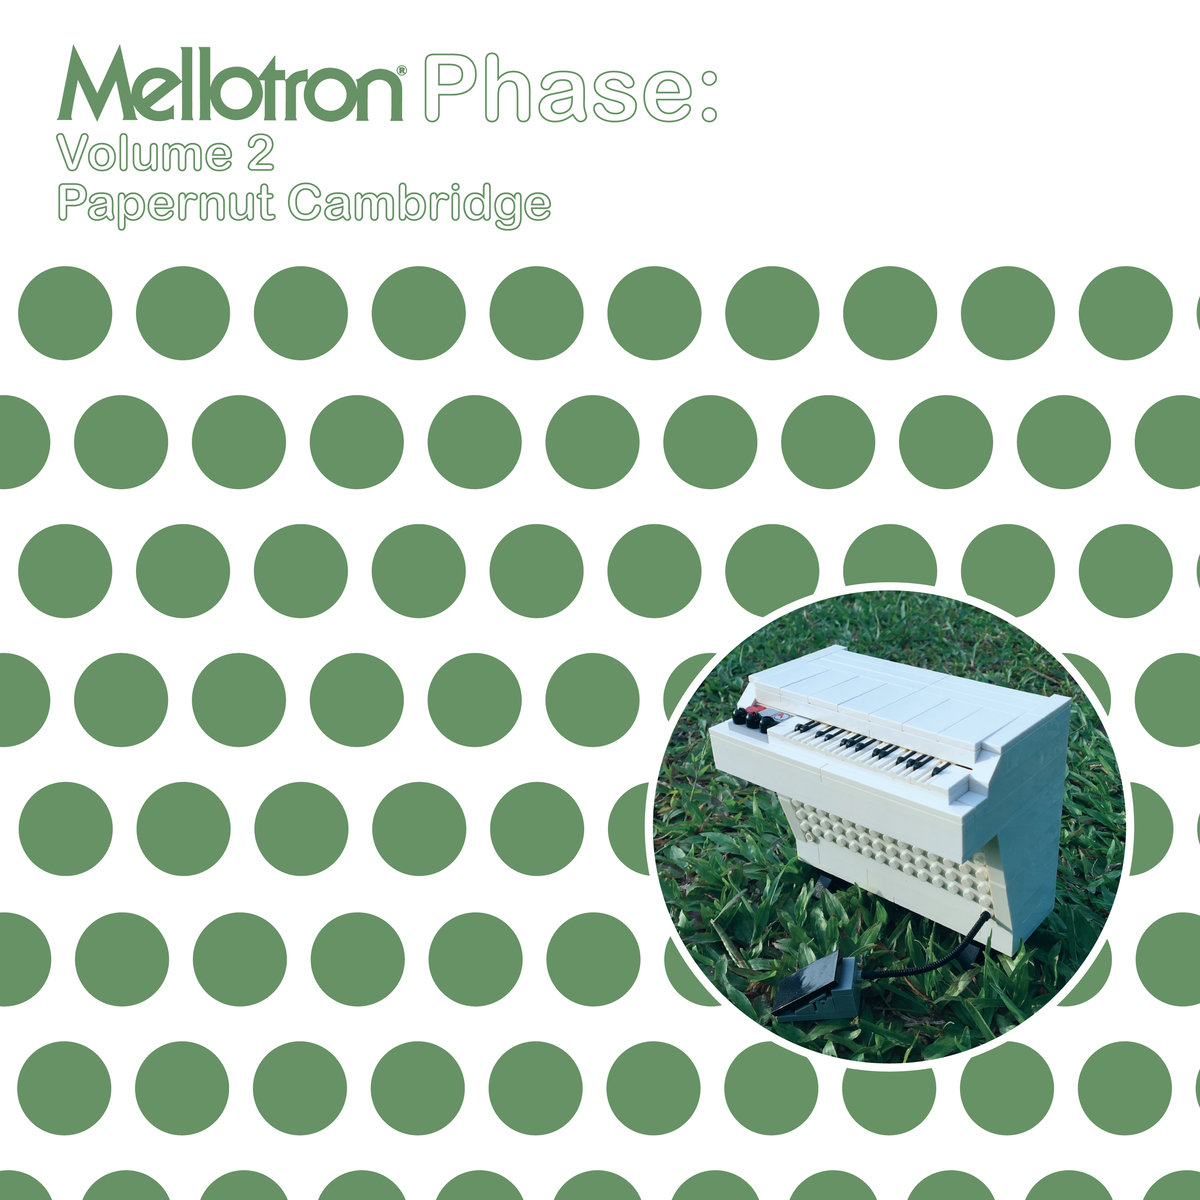 Papernut Cambridge - Mellotron Phase: Volume 2